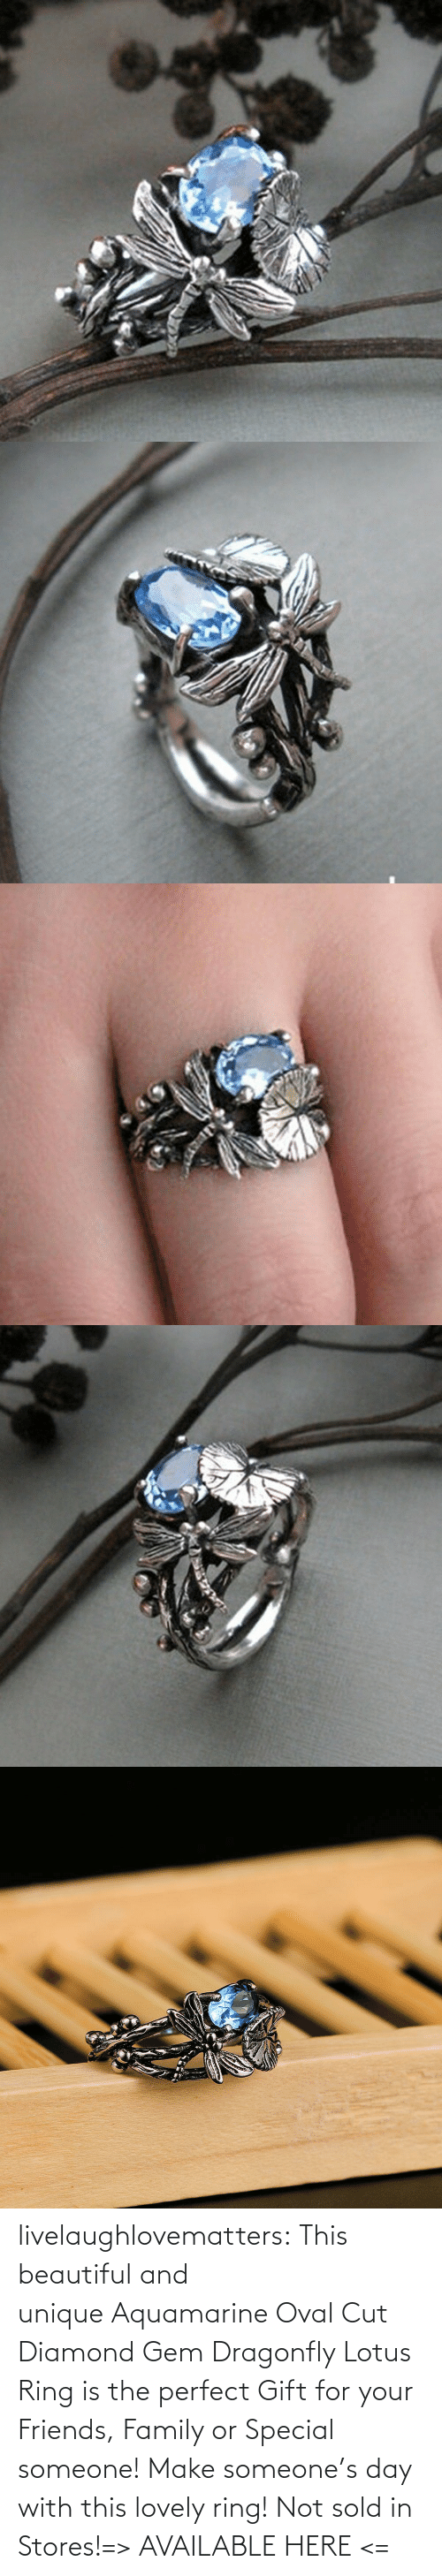 Diamond: livelaughlovematters:  This beautiful and unique Aquamarine Oval Cut Diamond Gem Dragonfly Lotus Ring is the perfect Gift for your Friends, Family or Special someone! Make someone's day with this lovely ring! Not sold in Stores!=> AVAILABLE HERE <=